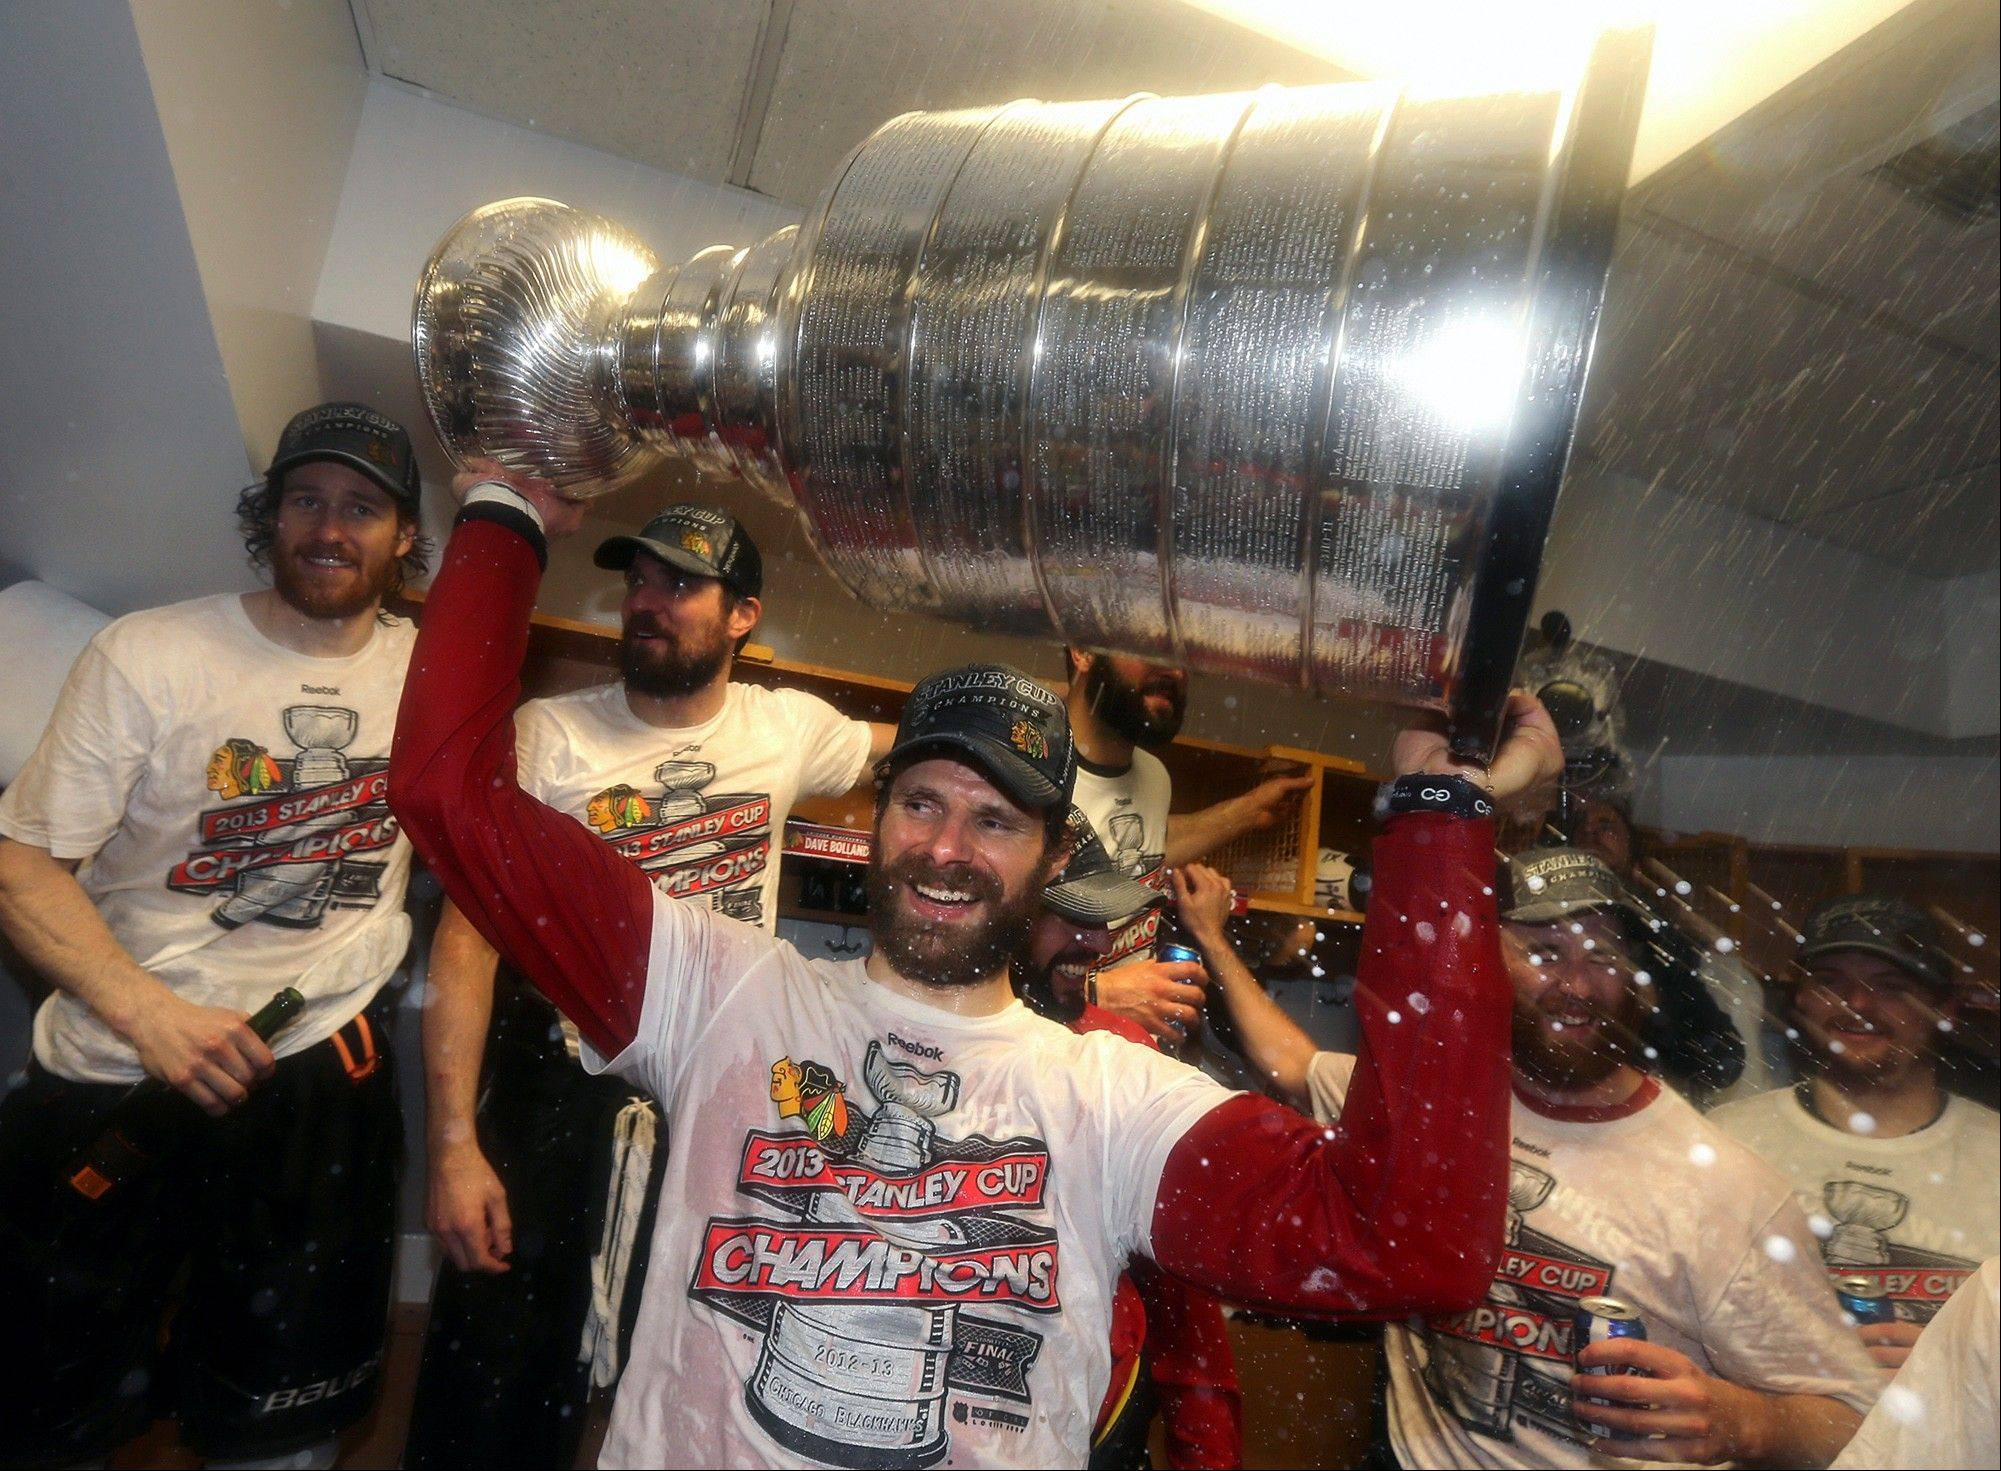 Blackhawks center Michal Handzus gets to celebrate with the Stanley Cup for the first time in his career following Monday night's game.